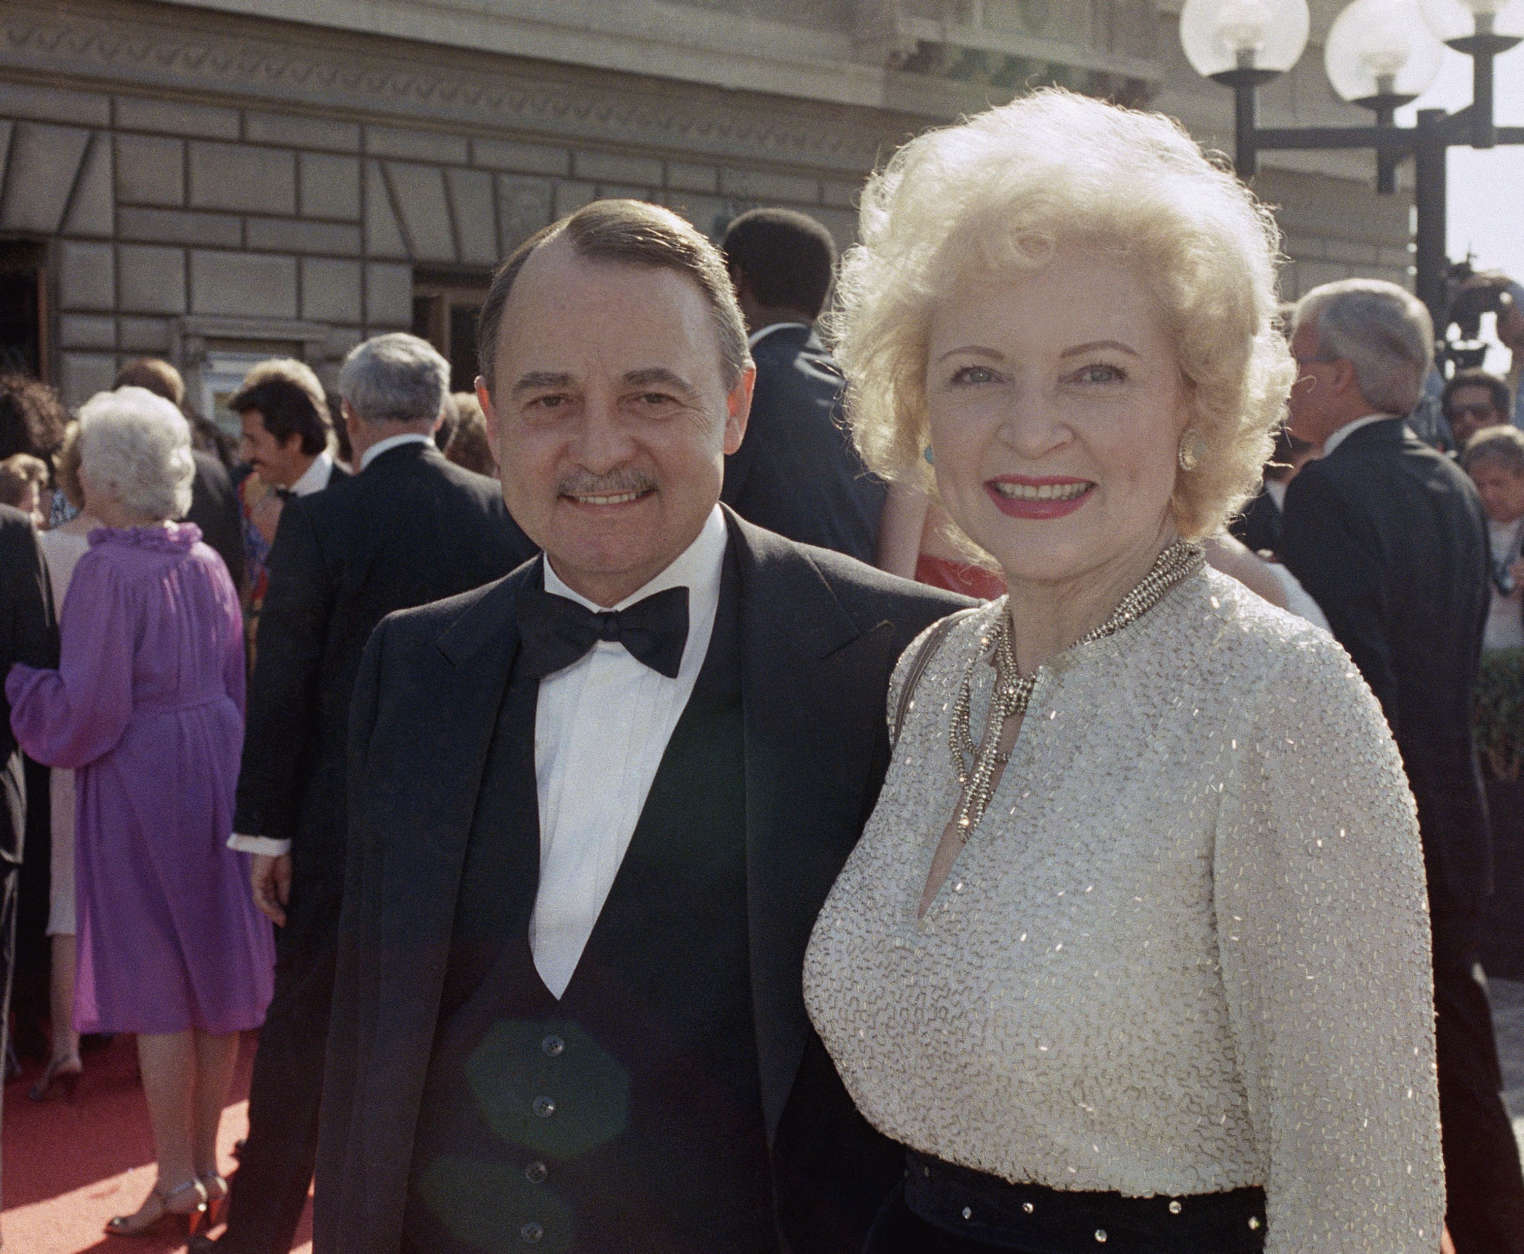 """Actor John Hillerman died Thursday, Nov. 9, 2017. He started as Higgins in """"Magnum, P.I."""" He is pictured here with actress Betty White at the Emmy Awards, Sept. 22, 1985 in Pasadena, California. (AP Photo/LIU)"""